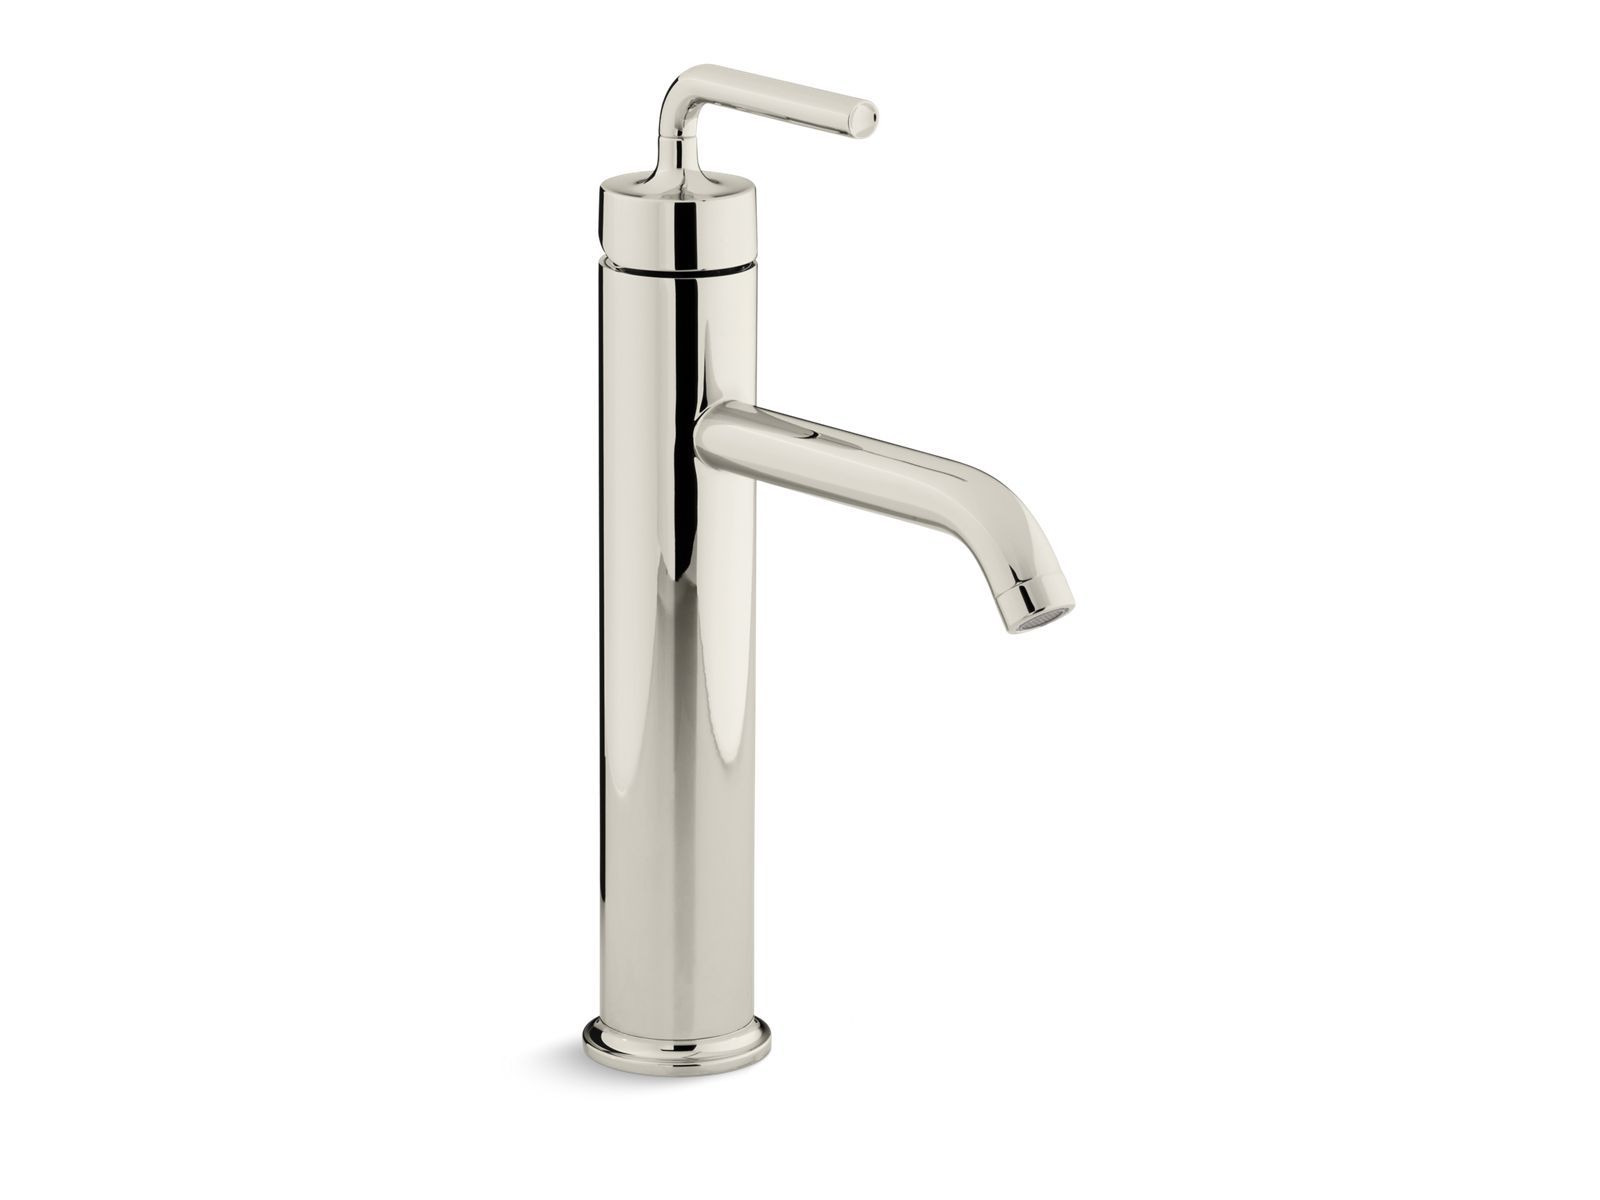 Purist Tall Single-Handle Bathroom Sink Faucet with Straight Lever Handle